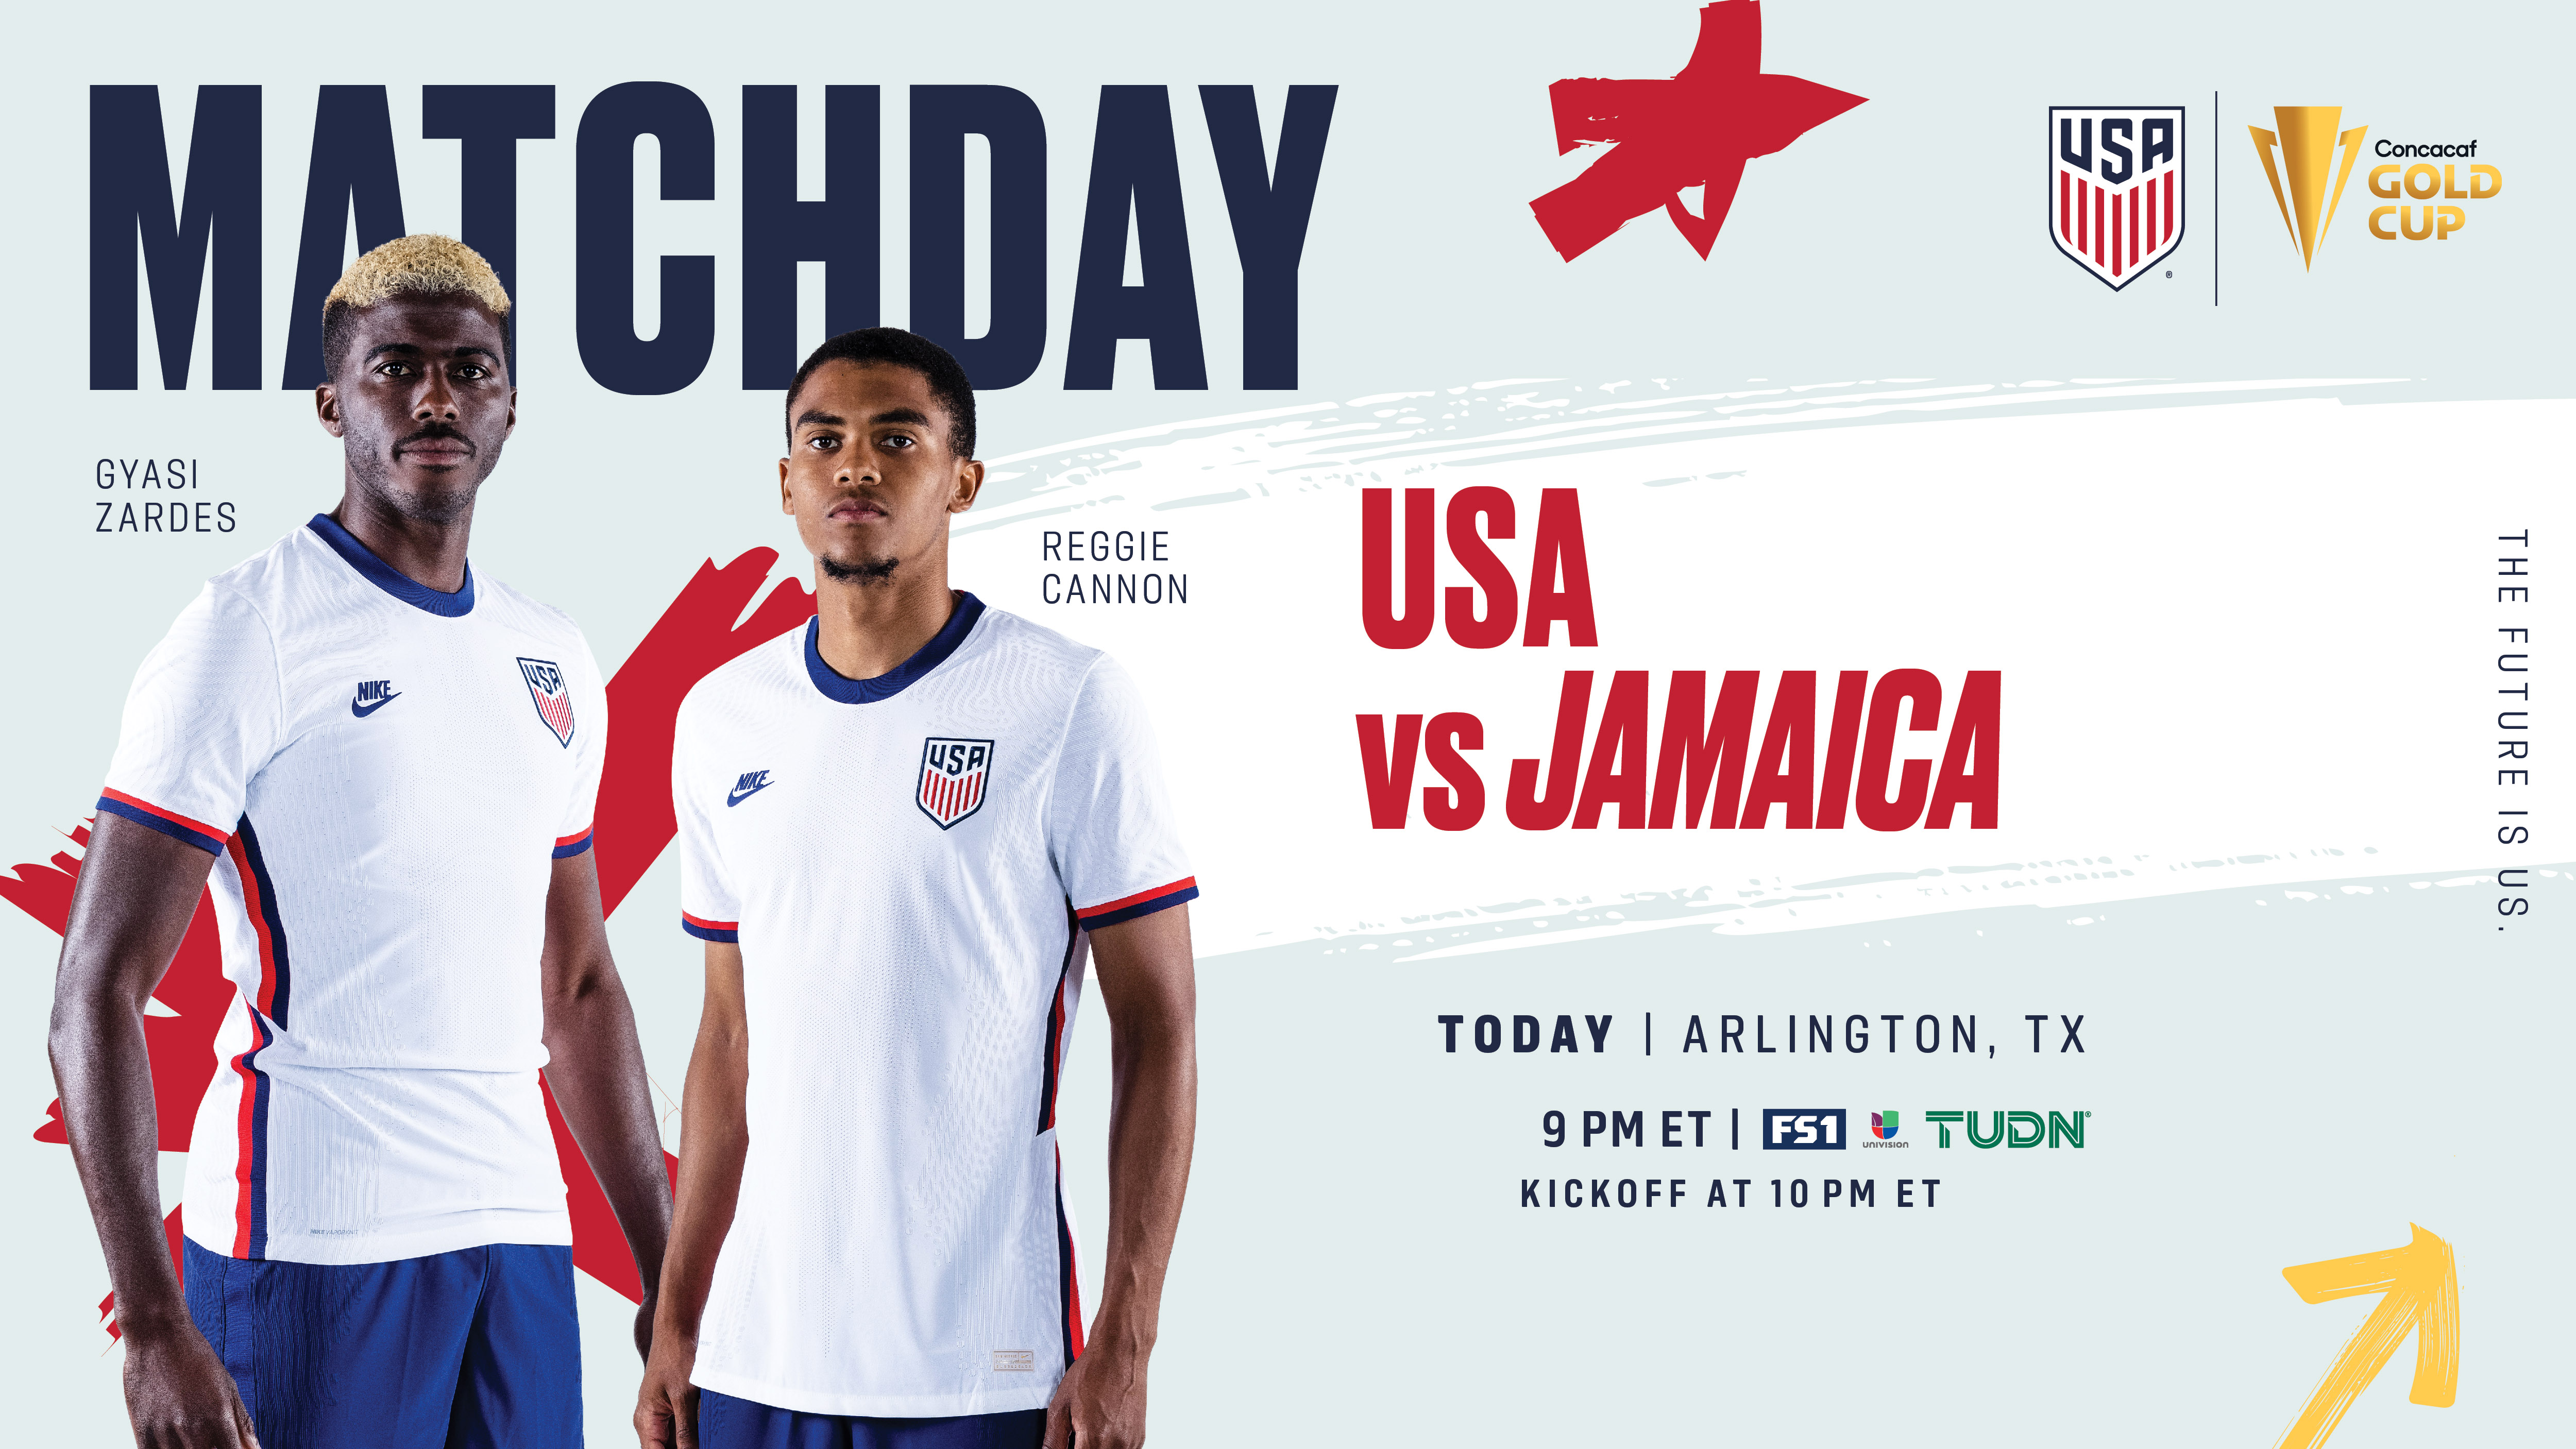 2021 Concacaf Gold Cup USA vs Jamaica - Preview, Schedule, TV Channels, Start Time